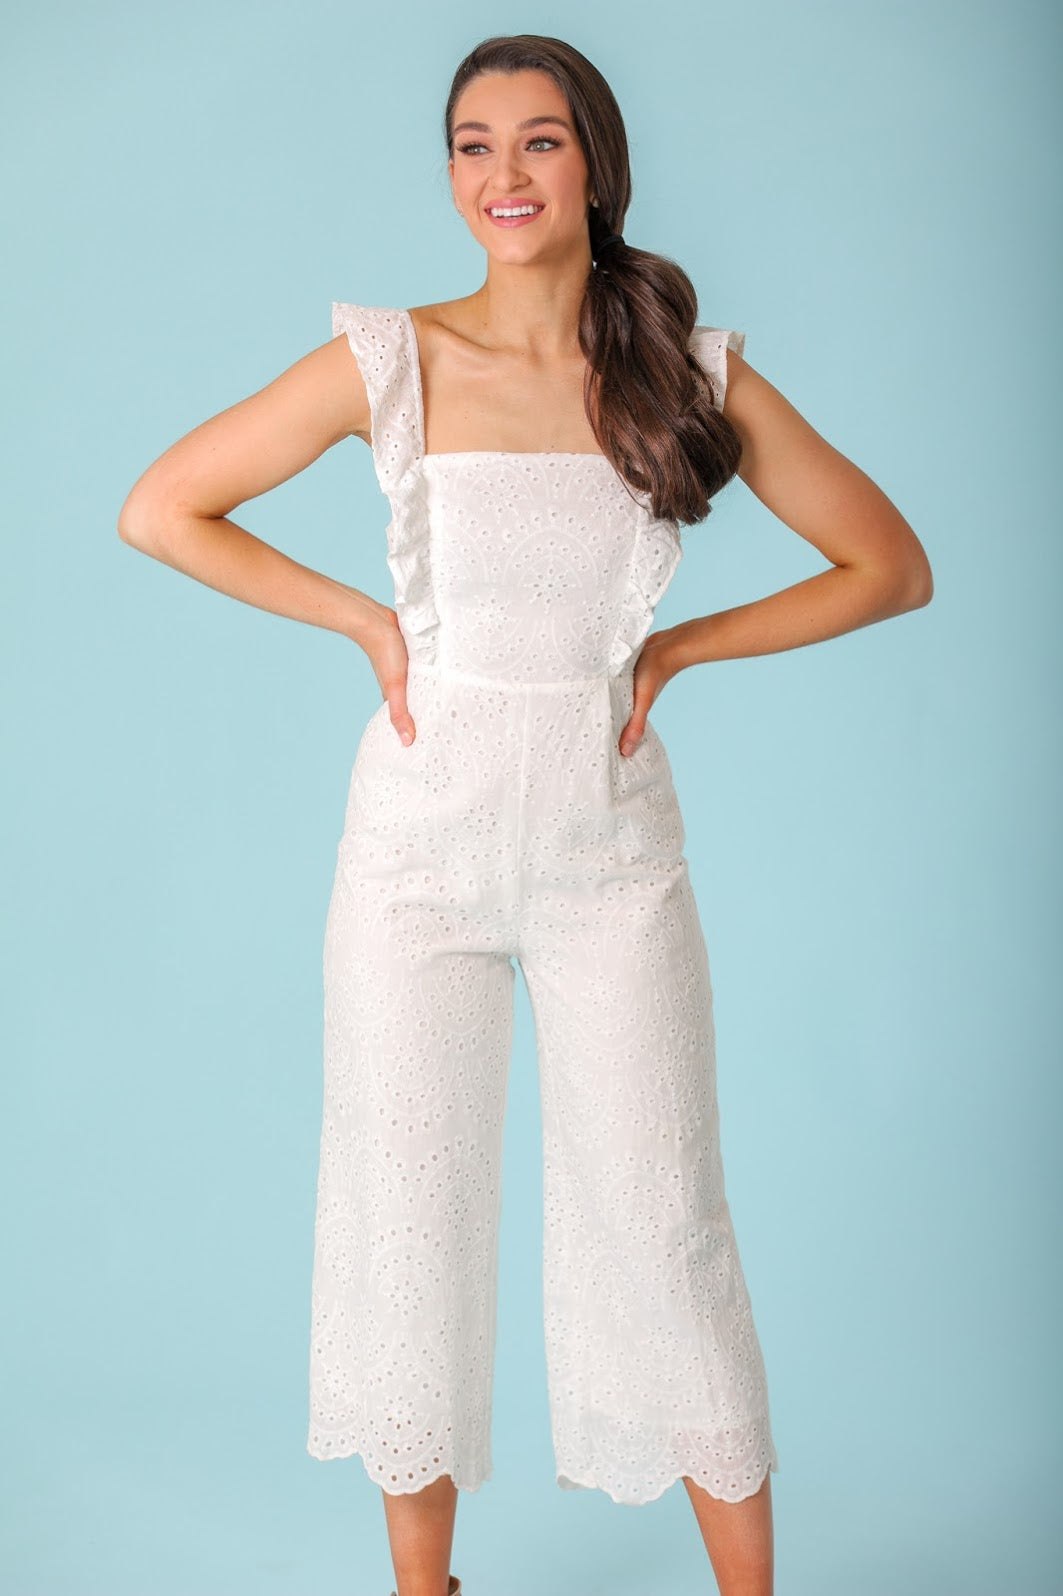 Time Goes By Eyelet Ruffle Jumpsuit - White - Jumpsuits - Wight Elephant Boutique